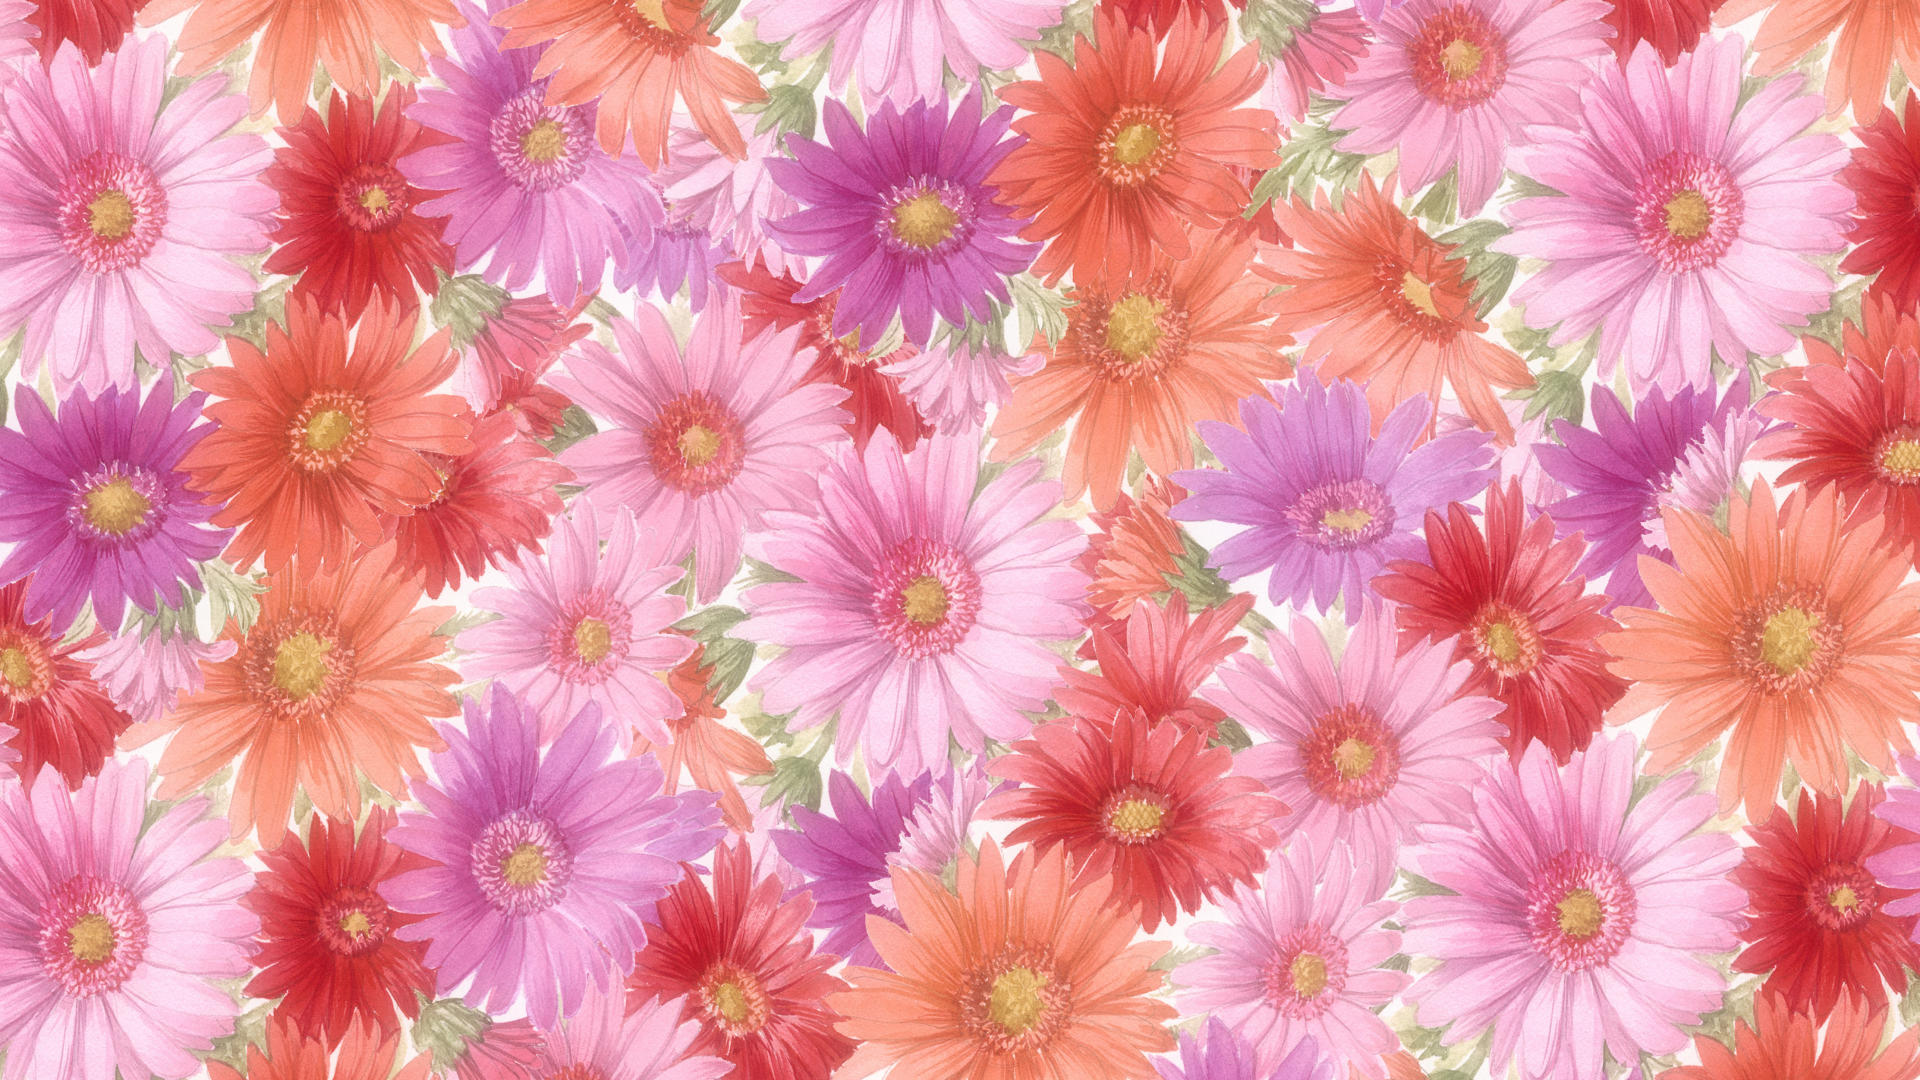 Flowers Wallpaper 155 Wallpapers Desktop Wallpapers HD 1920x1080